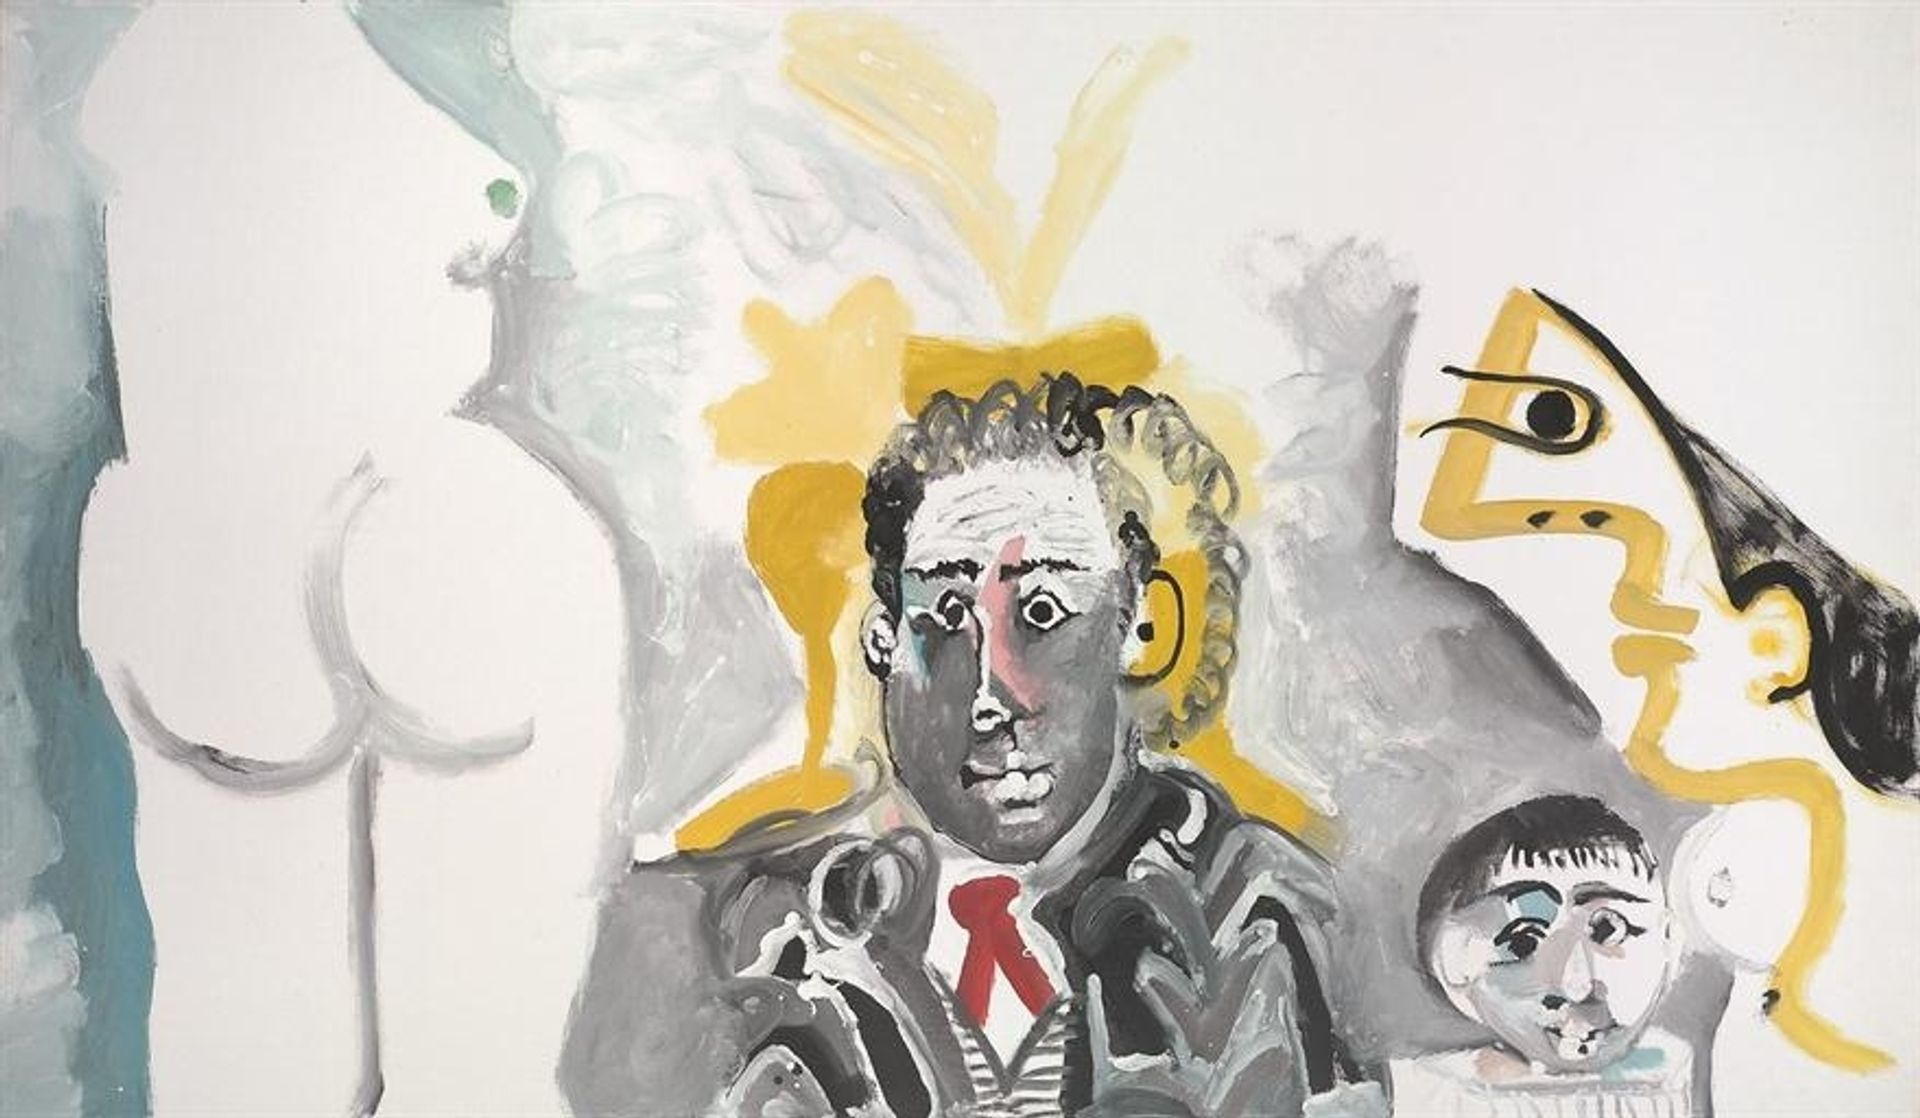 Pablo Picasso's Personnages (1965) Courtesy of Artnet Auctions